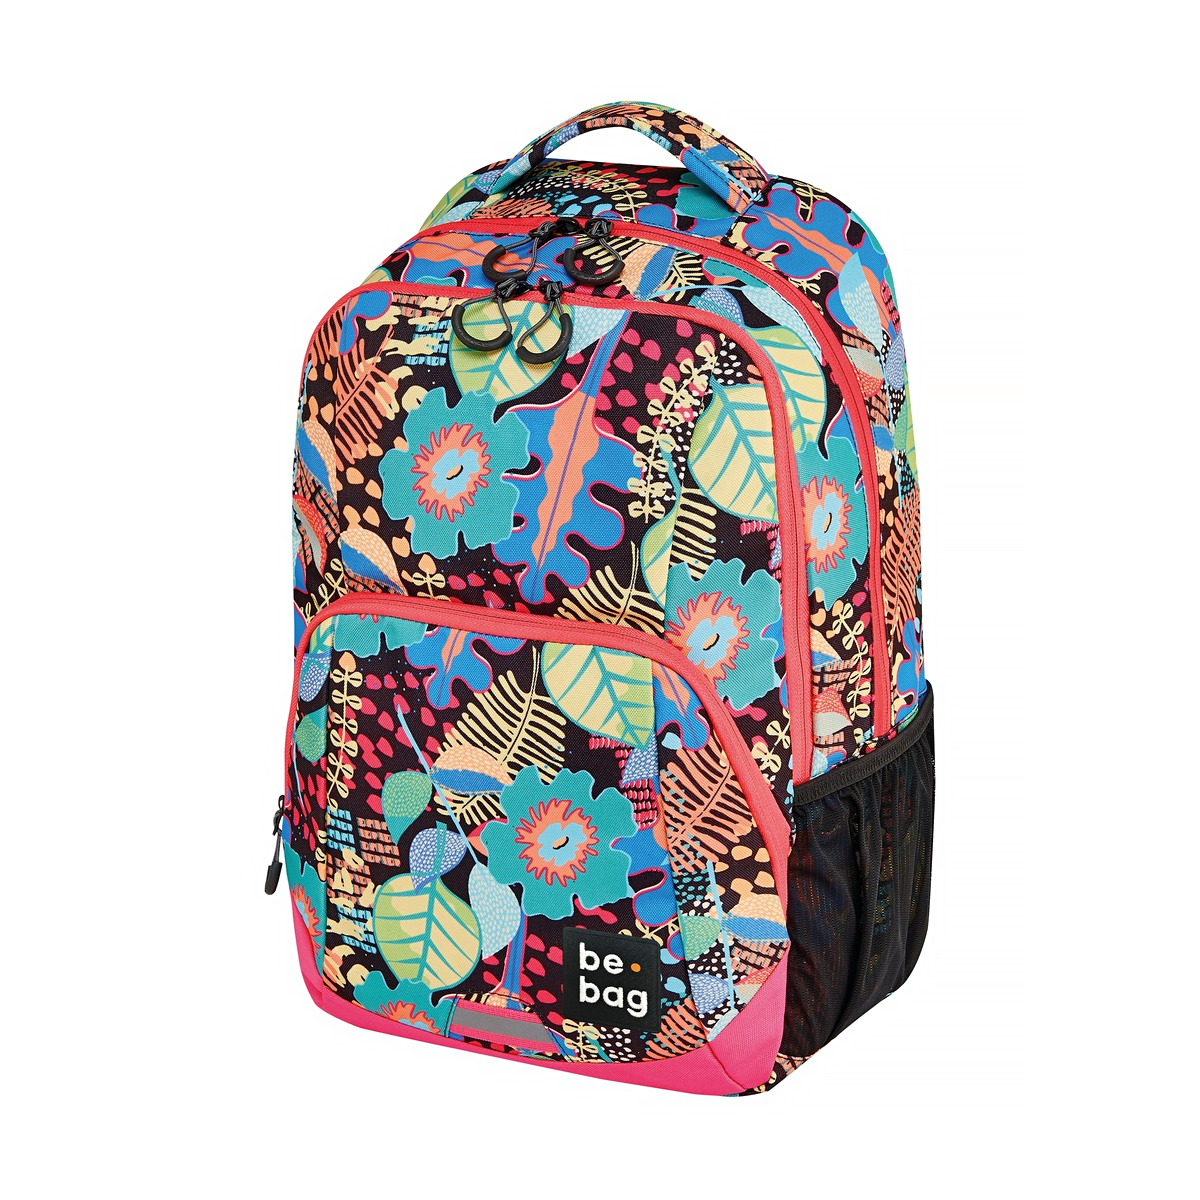 Rucsac Ergonomic Be.Bag, Be.Freestyle, Jungle, Herlitz, 24800211